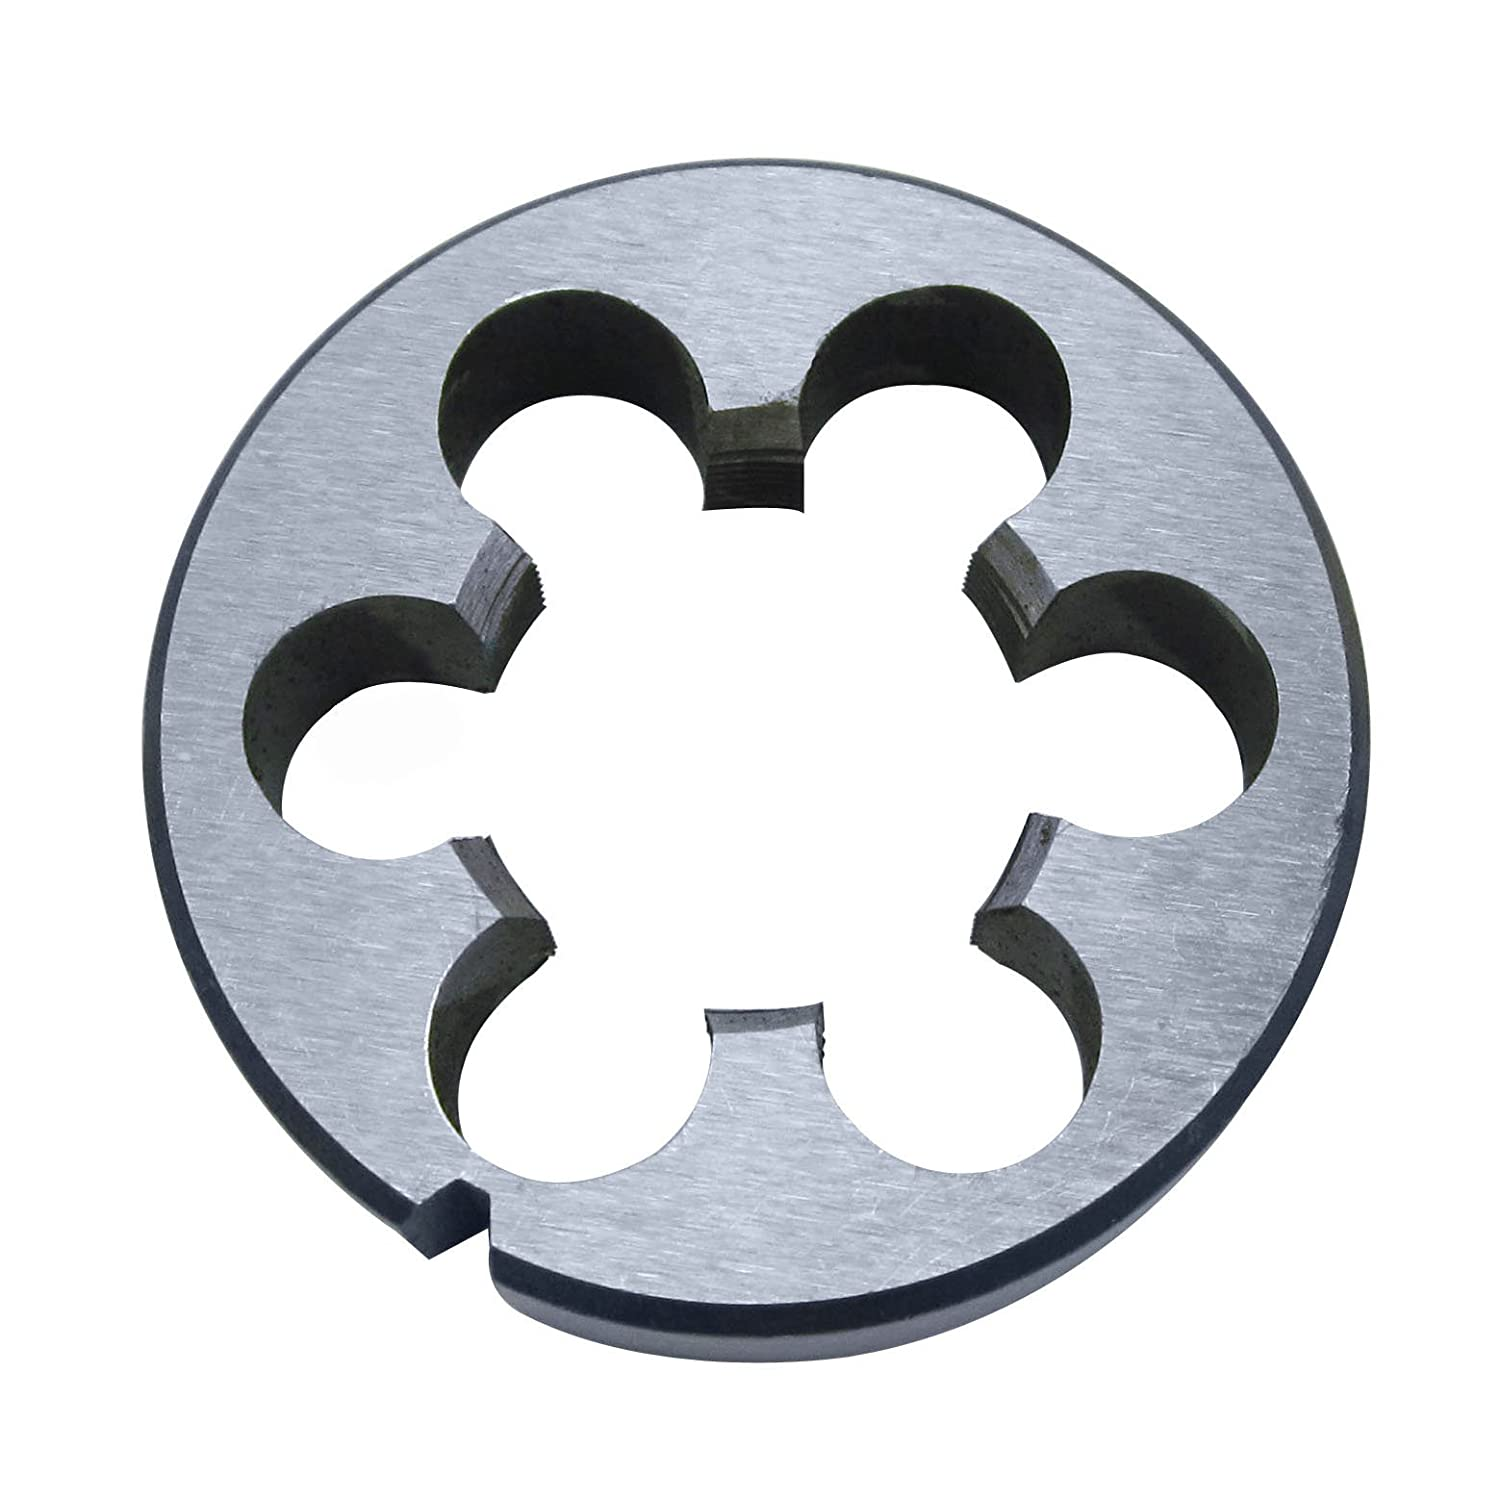 7//8-27 Unified Right Hand Thread Die